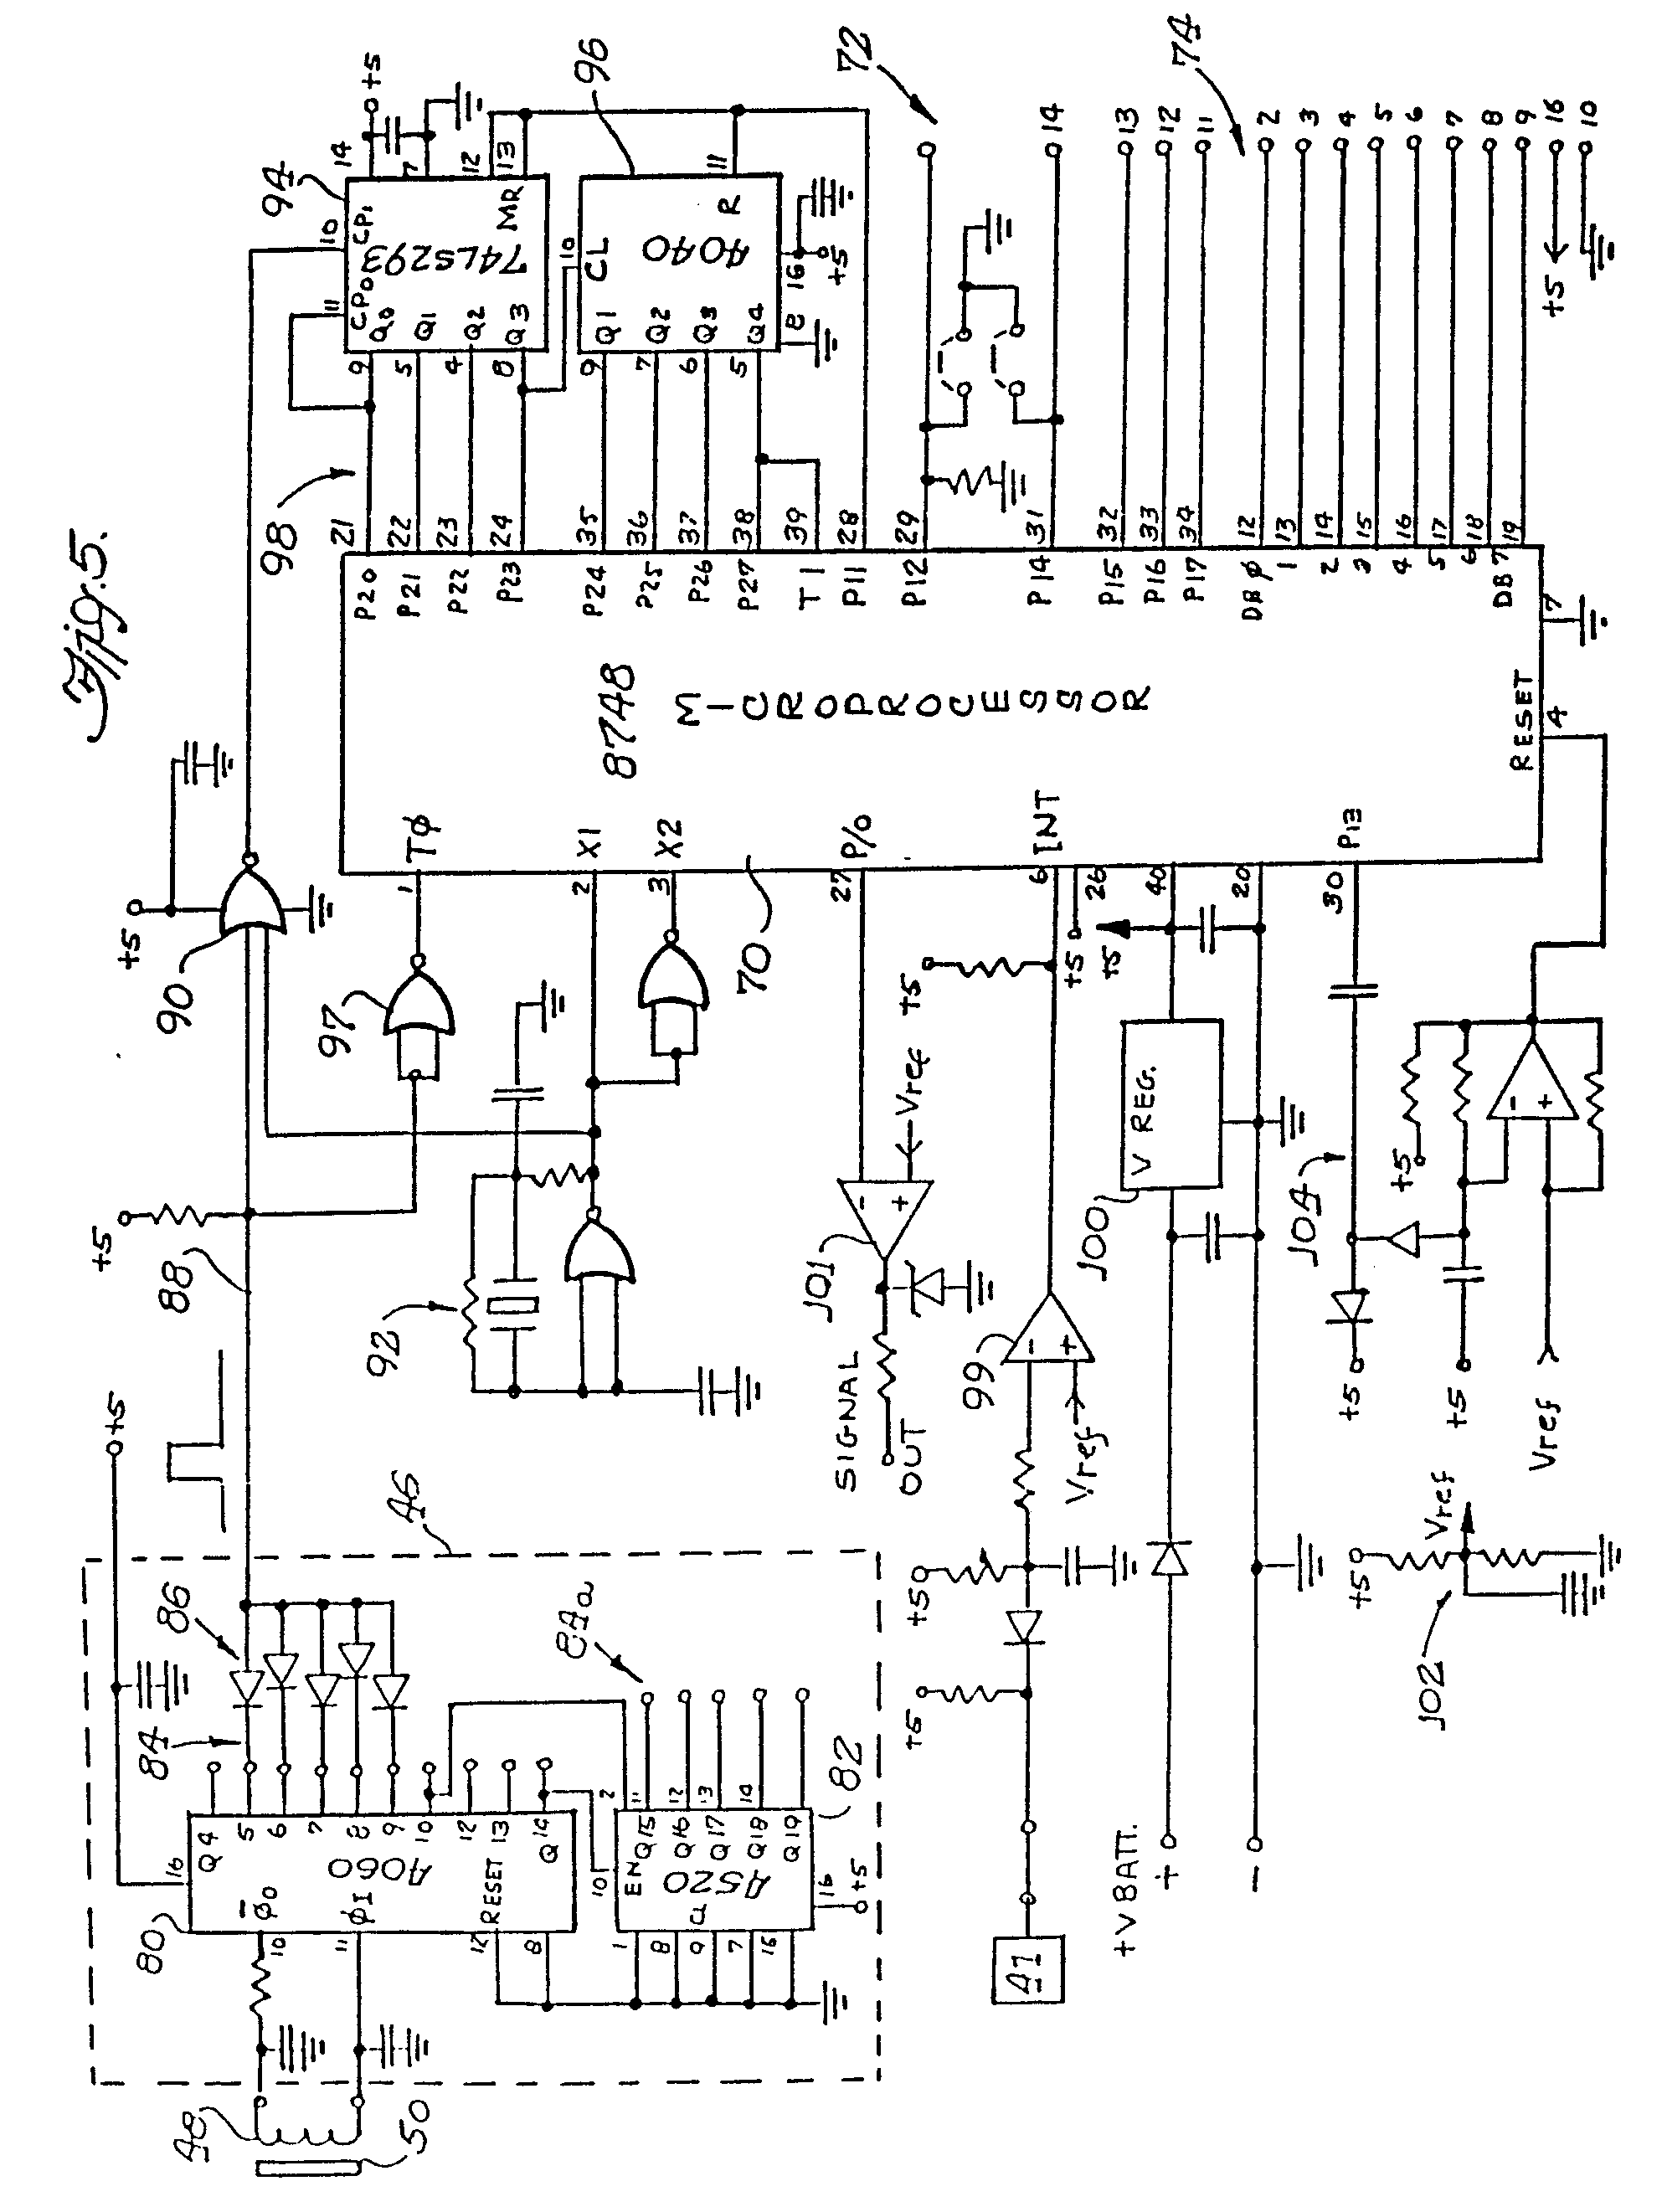 1958 Ford Tractor Wiring Diagram, 1958, Free Engine Image